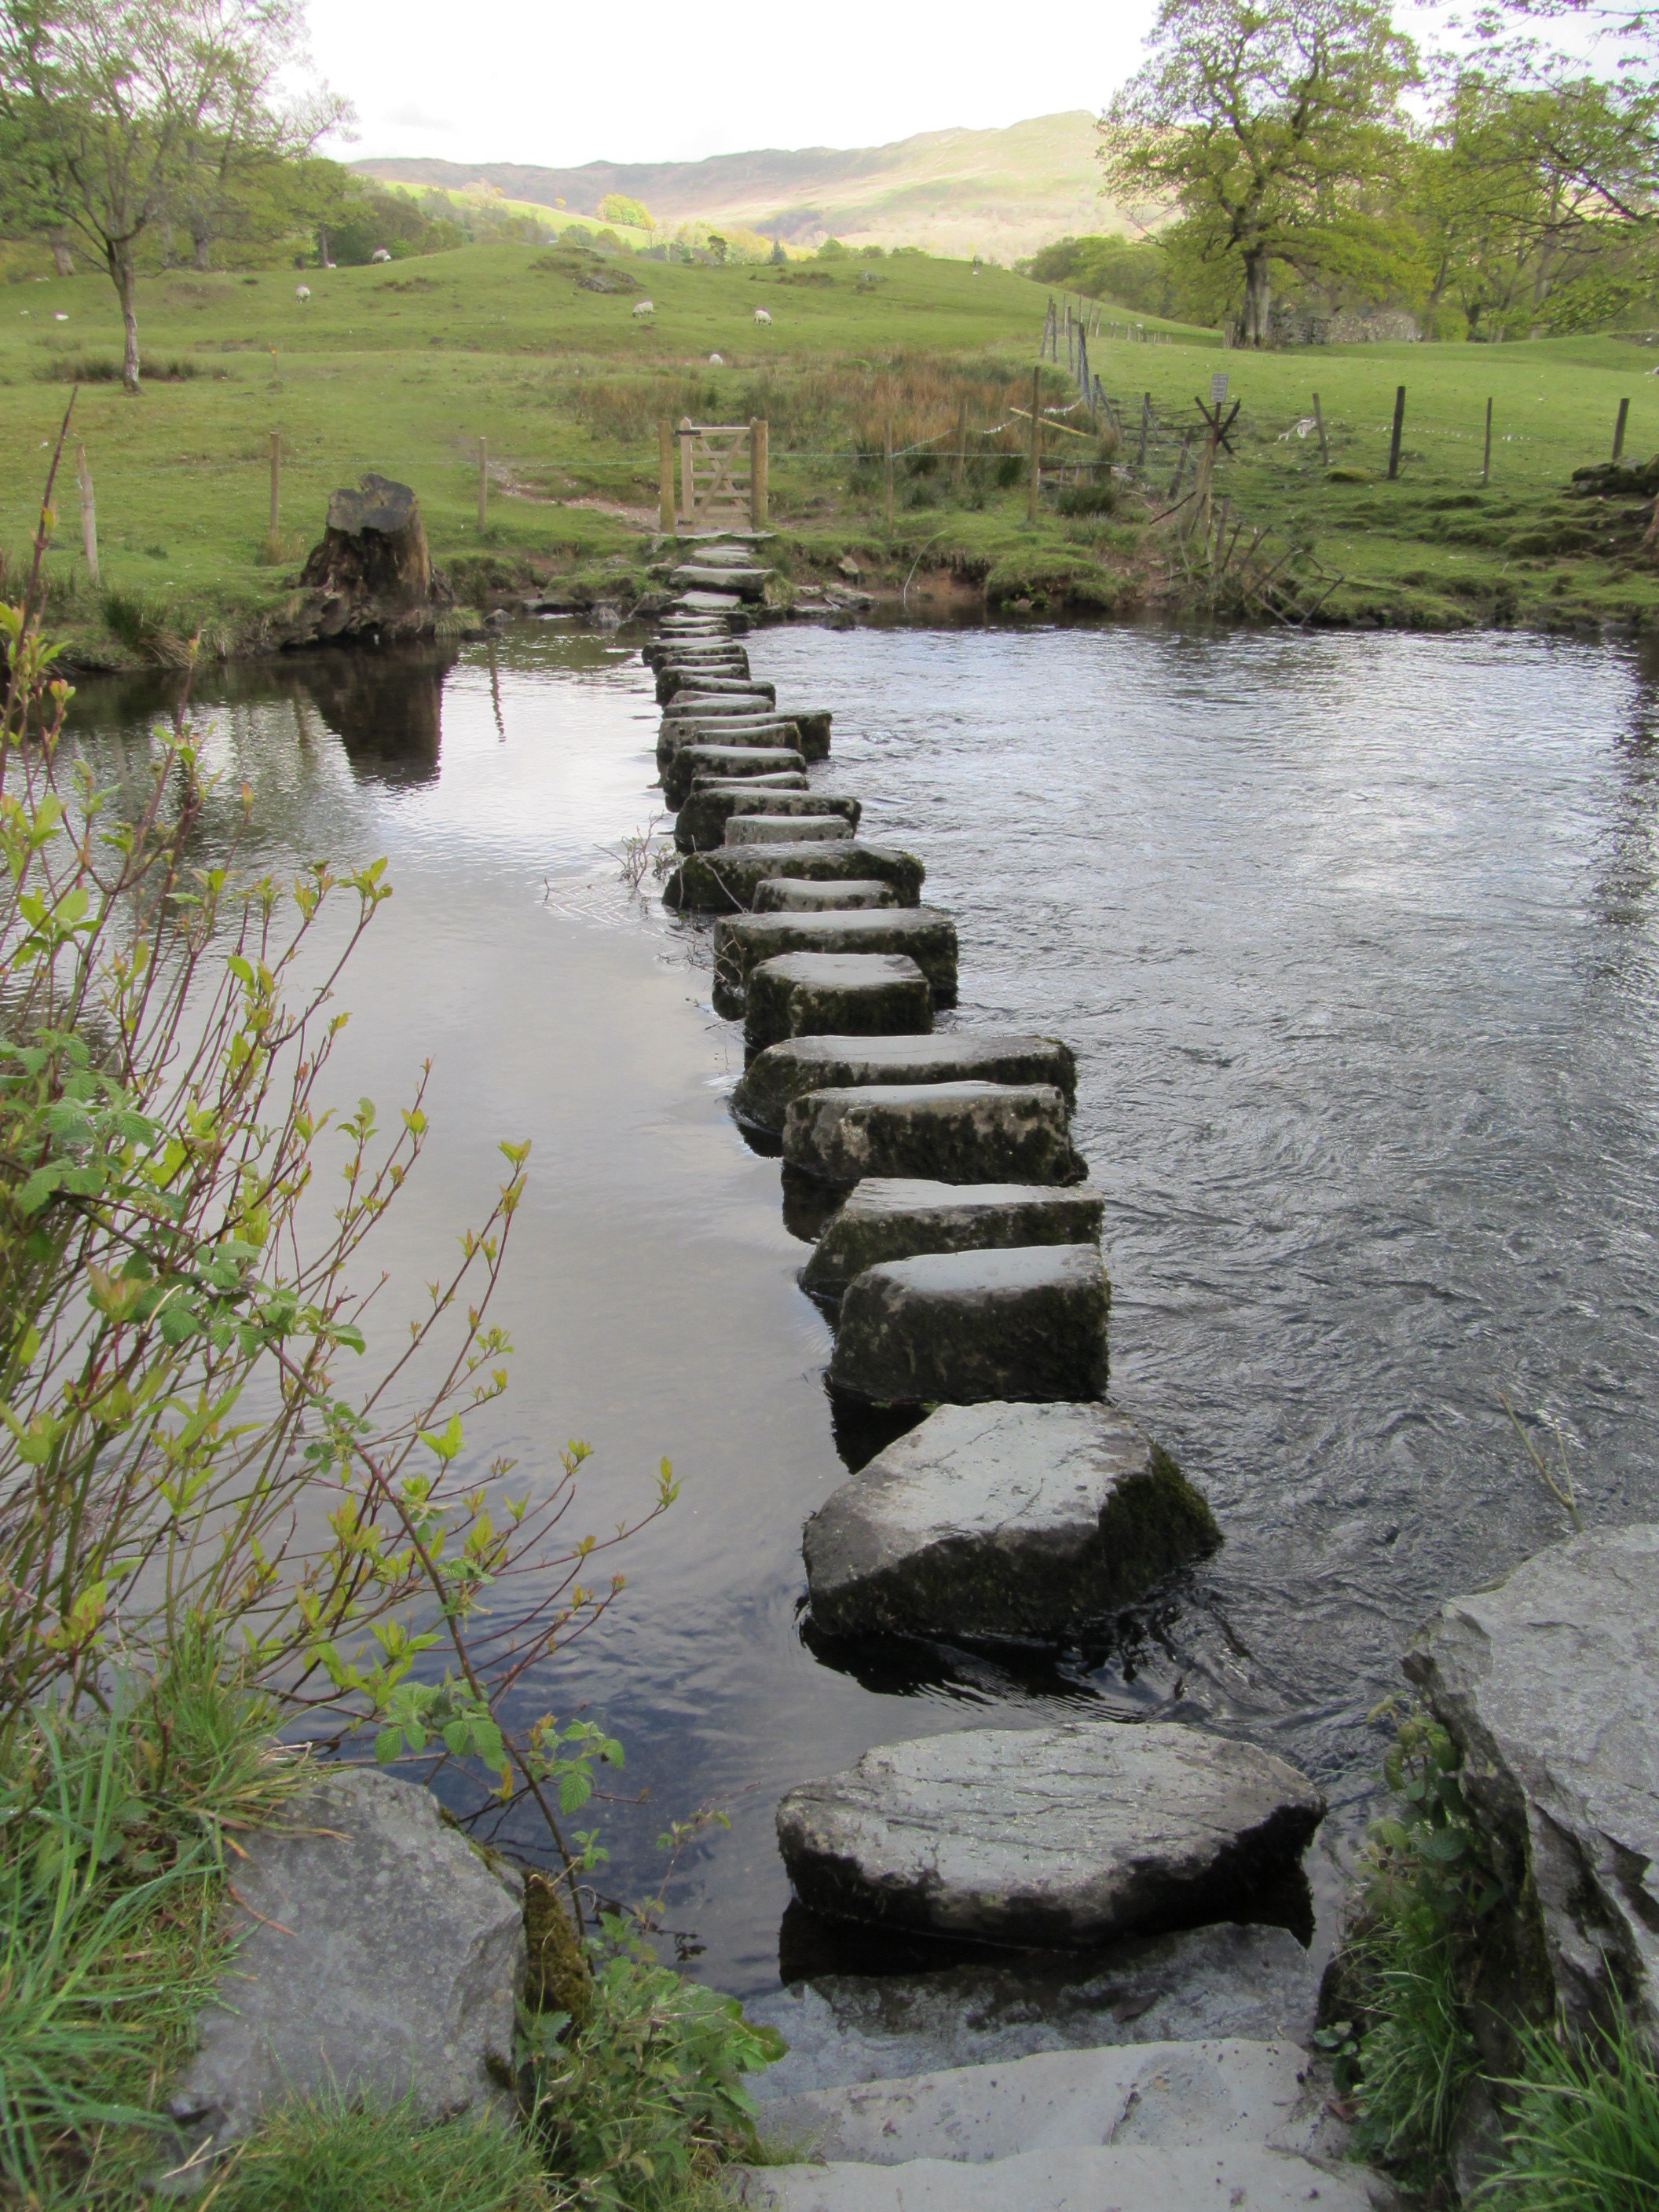 Stepping Stones file:river rothay stepping stones 120508w.jpg MUSEDHV